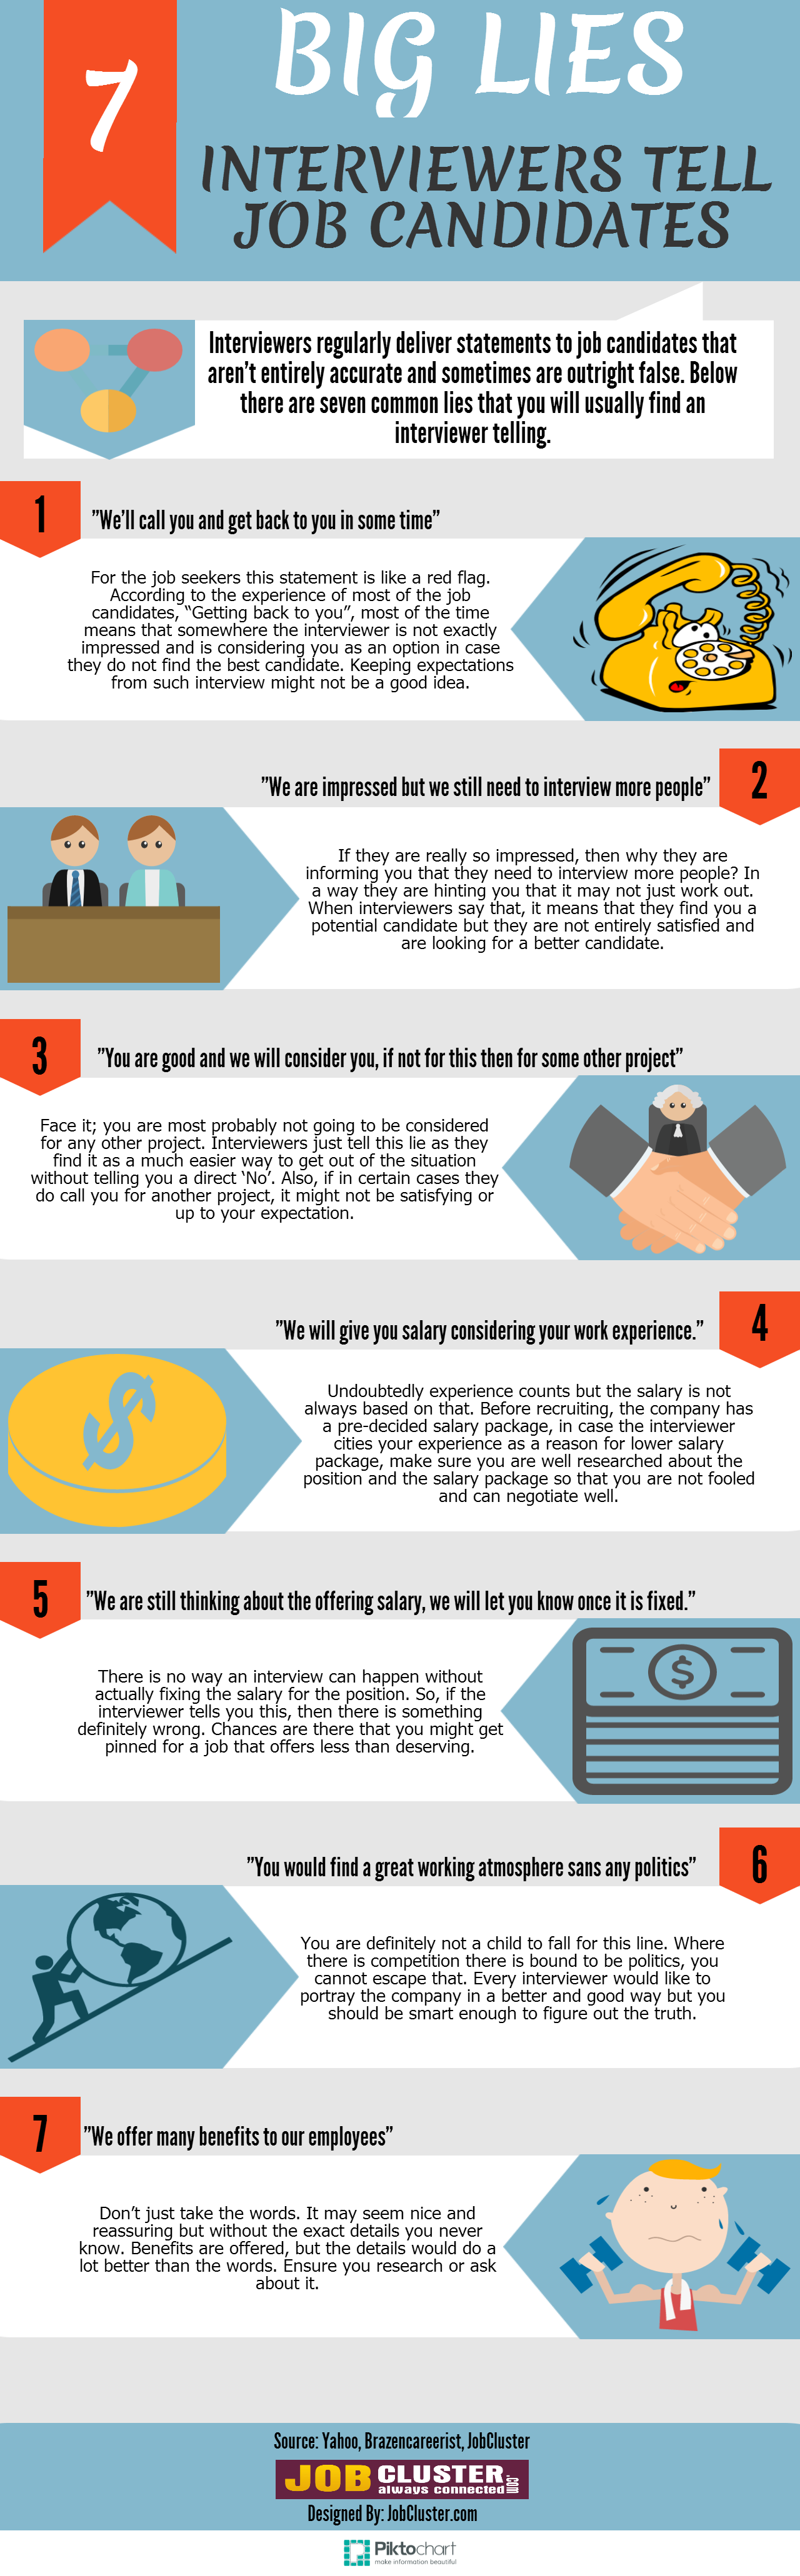 Meaning Of Resume In Job Application Of 7 Annoying Lies Job Interviewers Tell Candidates Infographic